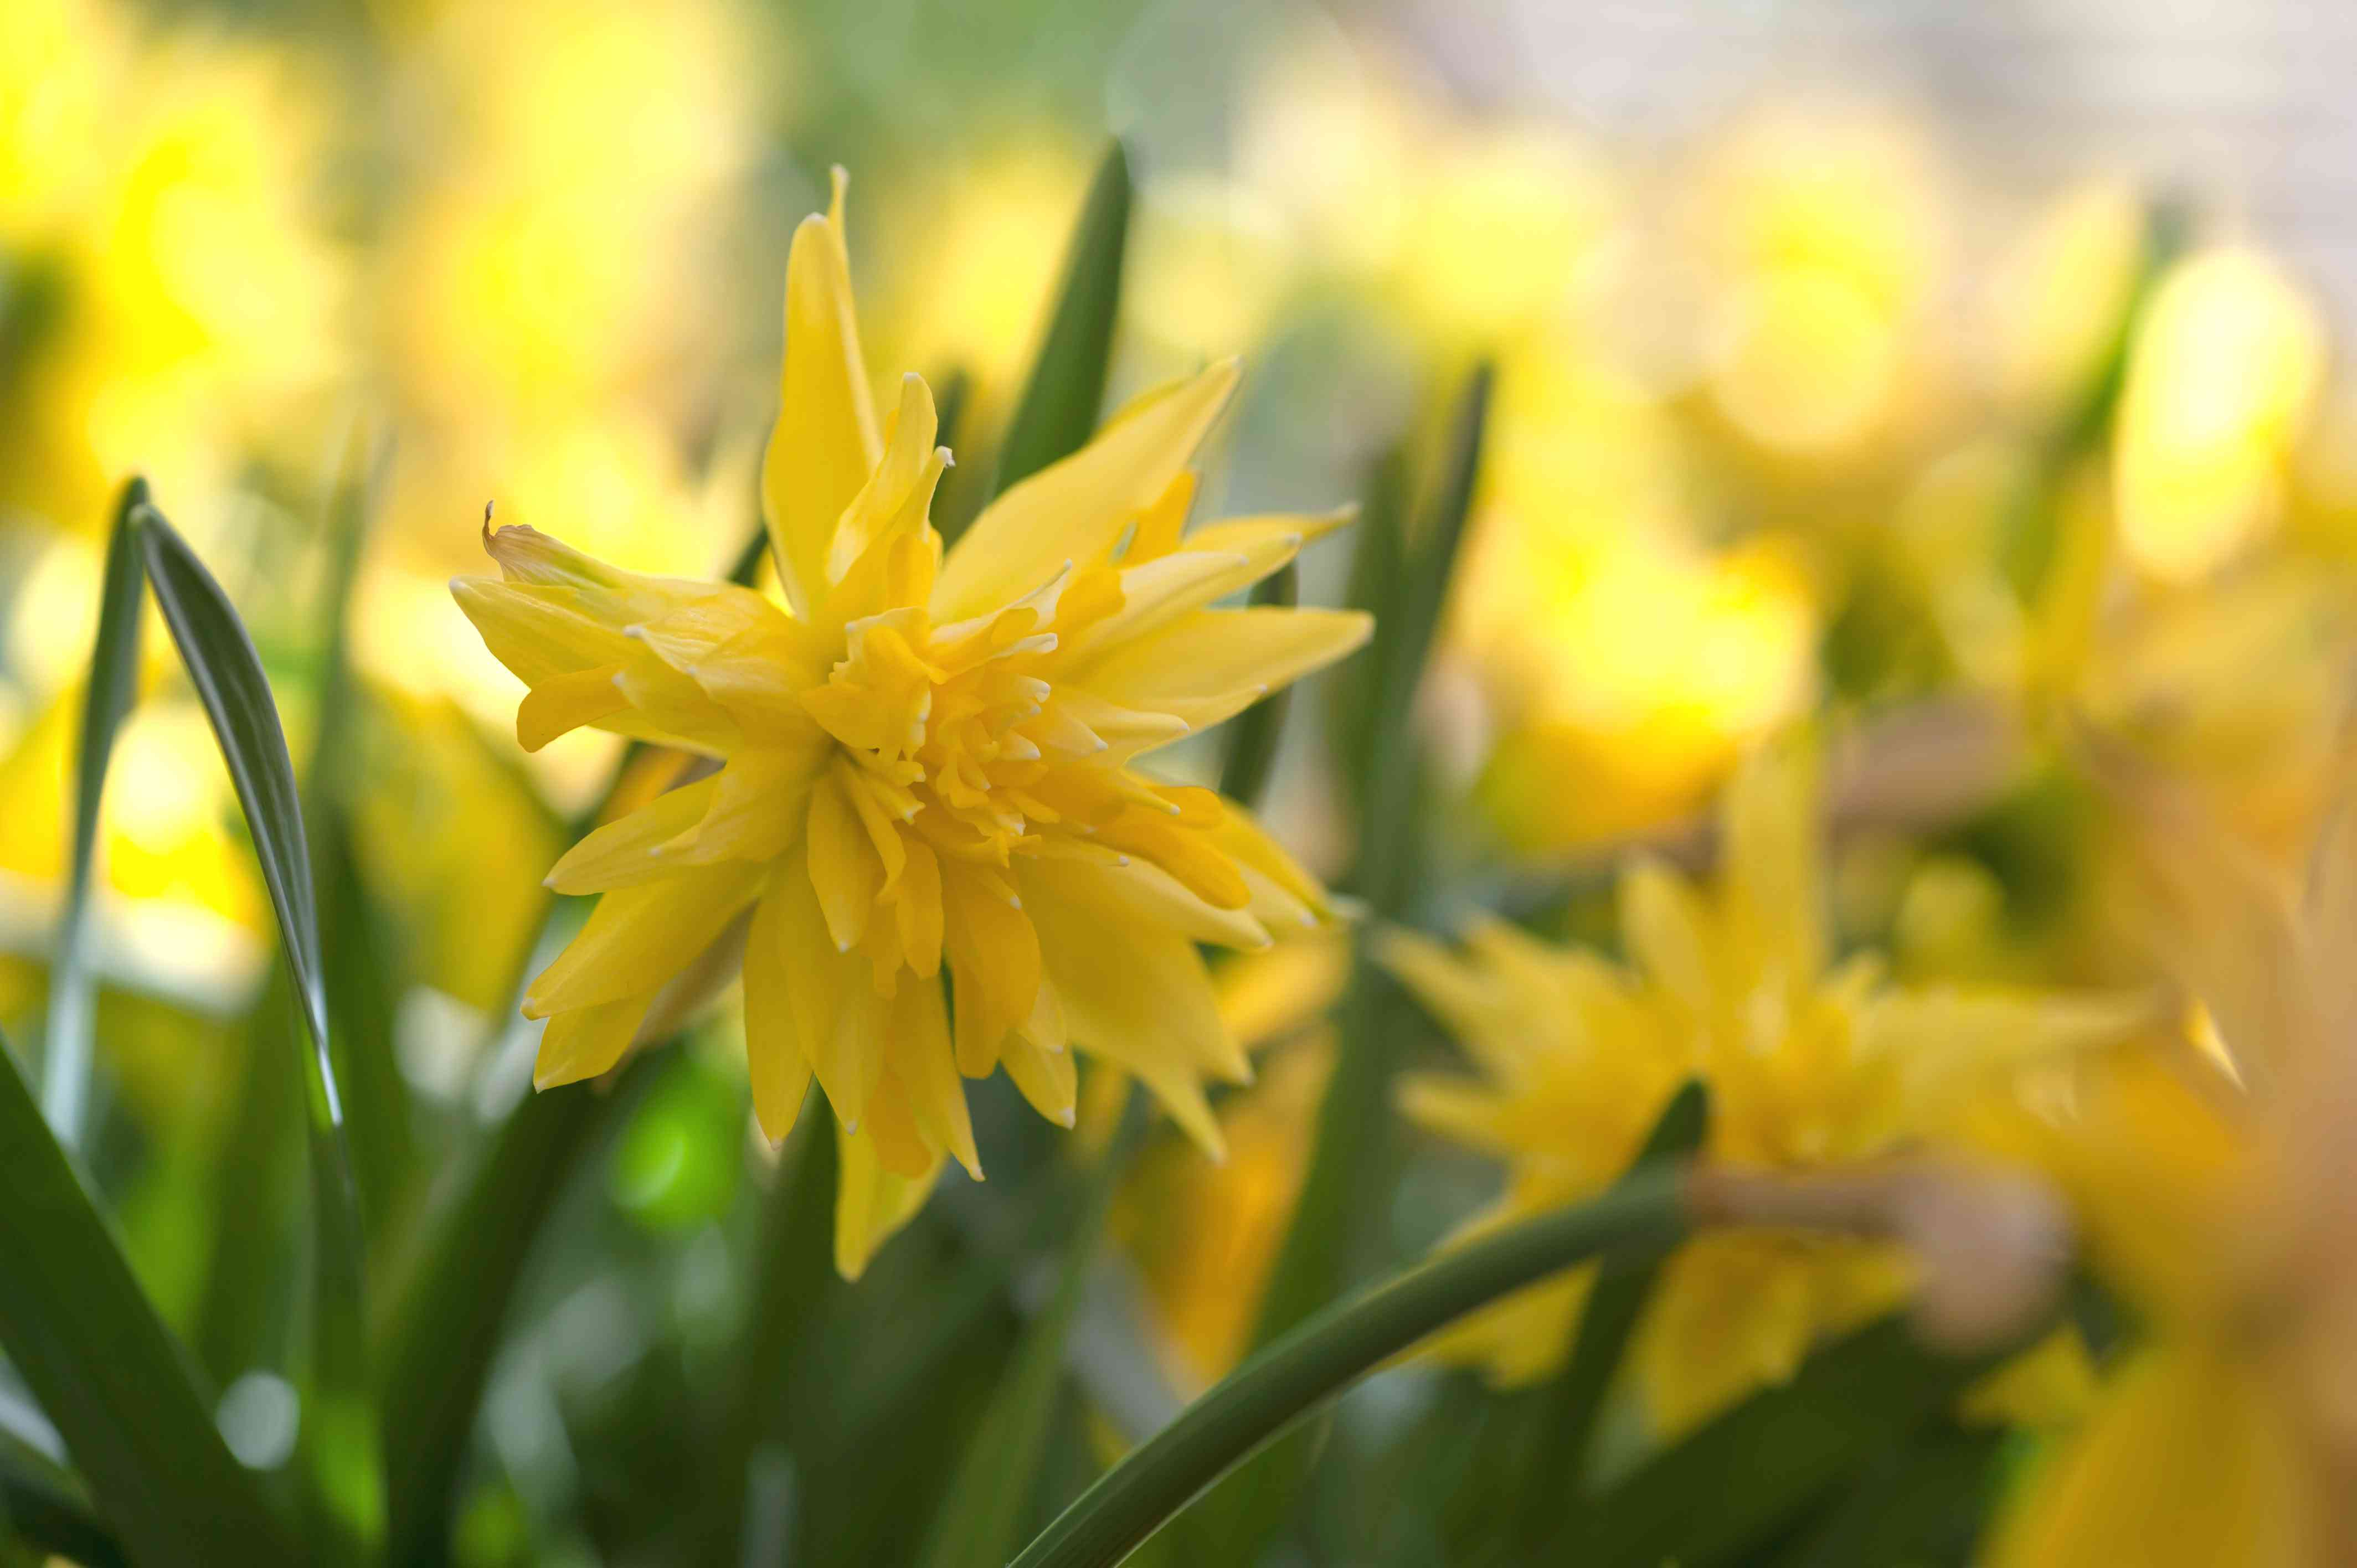 Double daffodil with yellow flowers and green leaves